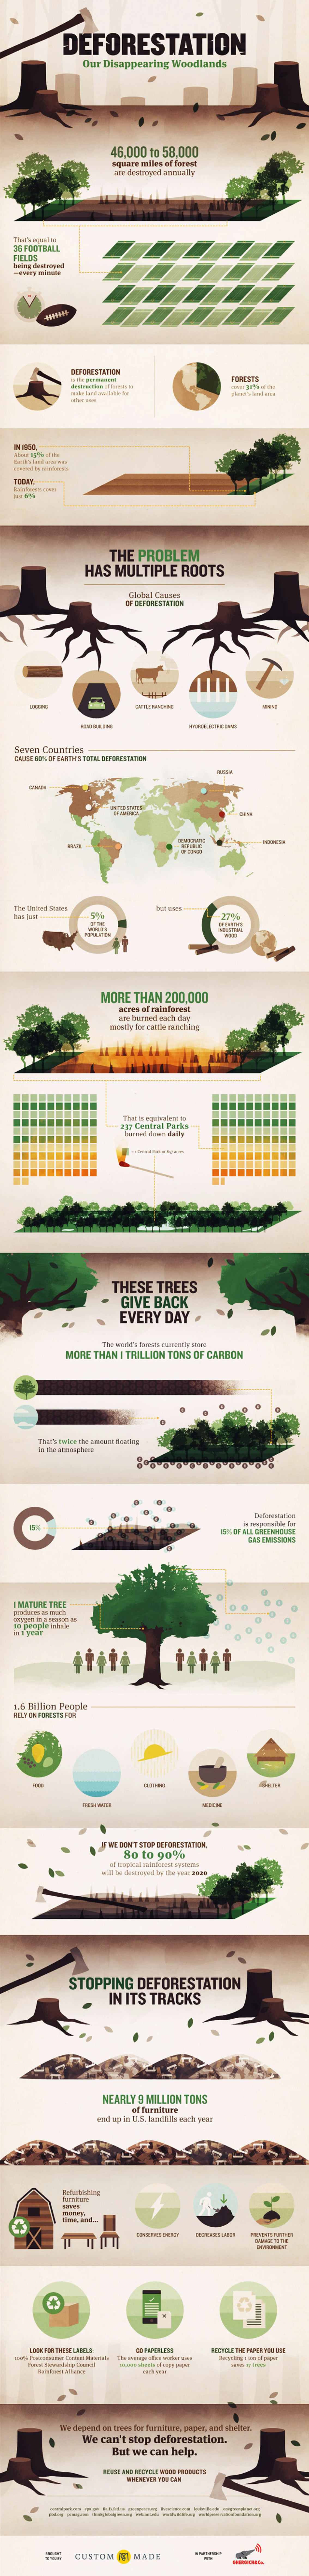 Negative Impacts of Deforestation Environmental Infographic